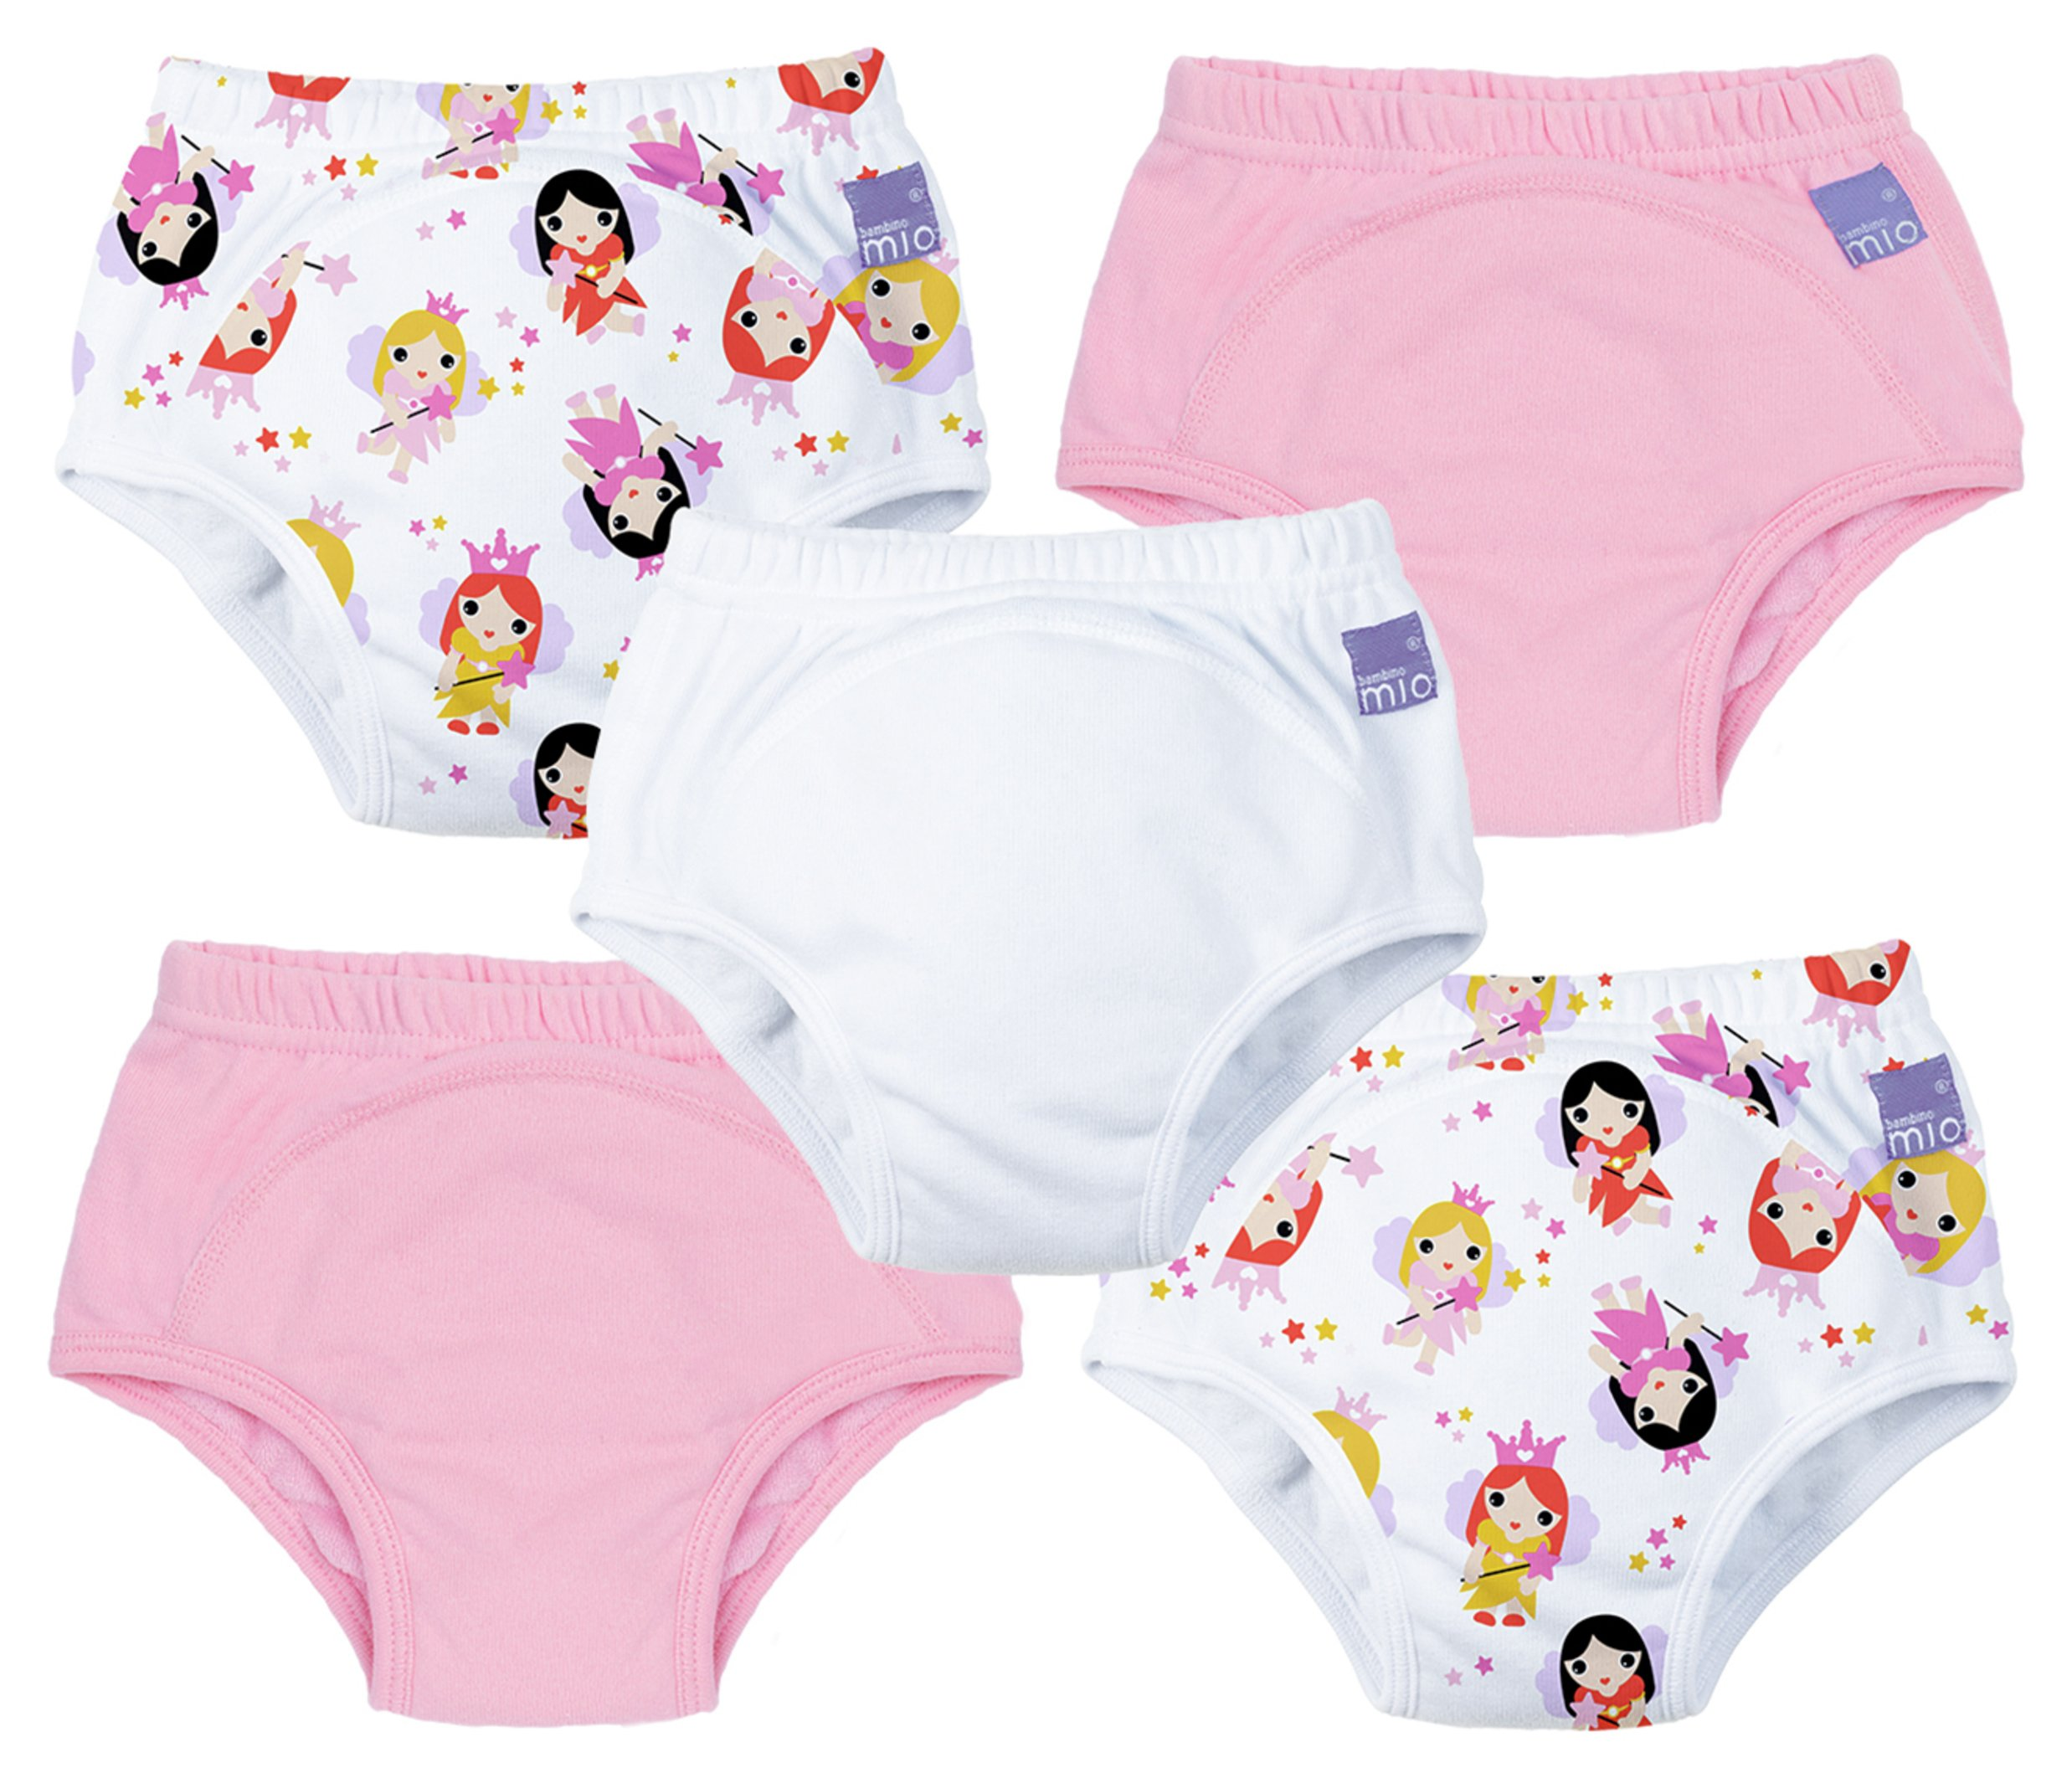 Image of Bambino Mio Fairy Potty Training Pants for 2-3 Years 5 Pack